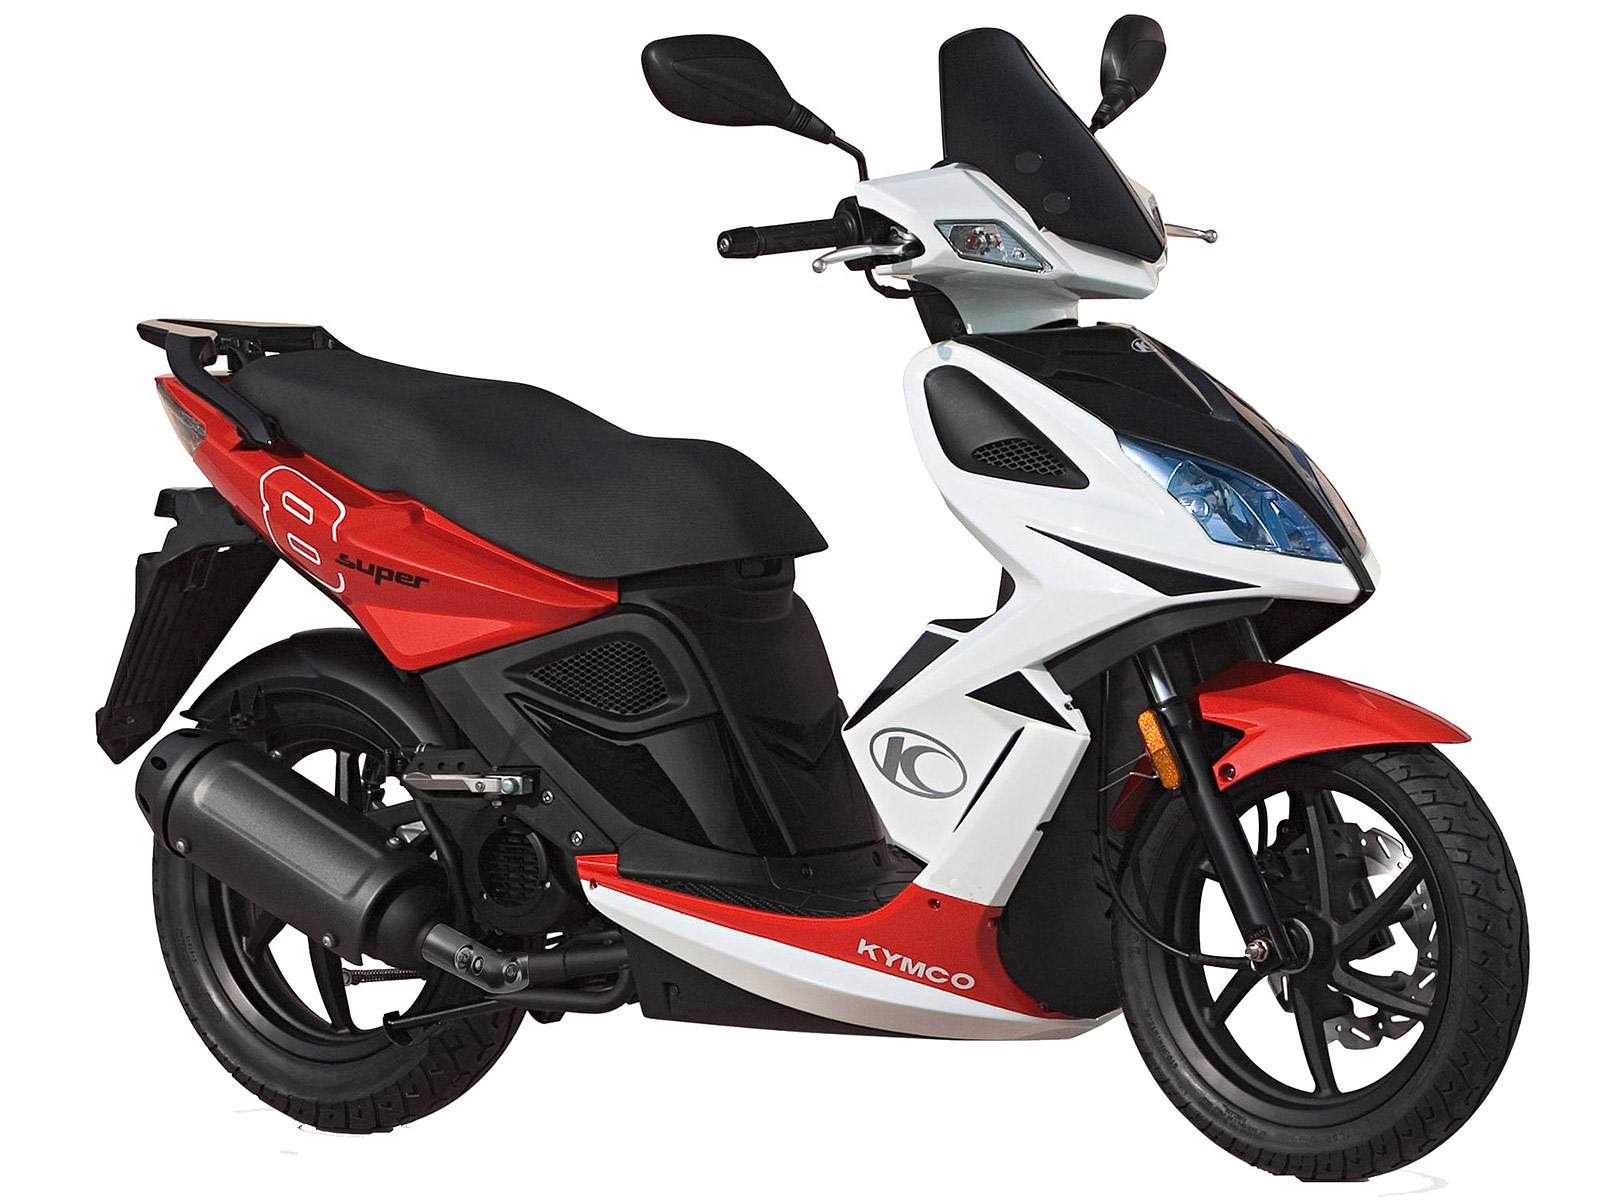 2012 kymco super 8 50 2t scooter insurance information. Black Bedroom Furniture Sets. Home Design Ideas